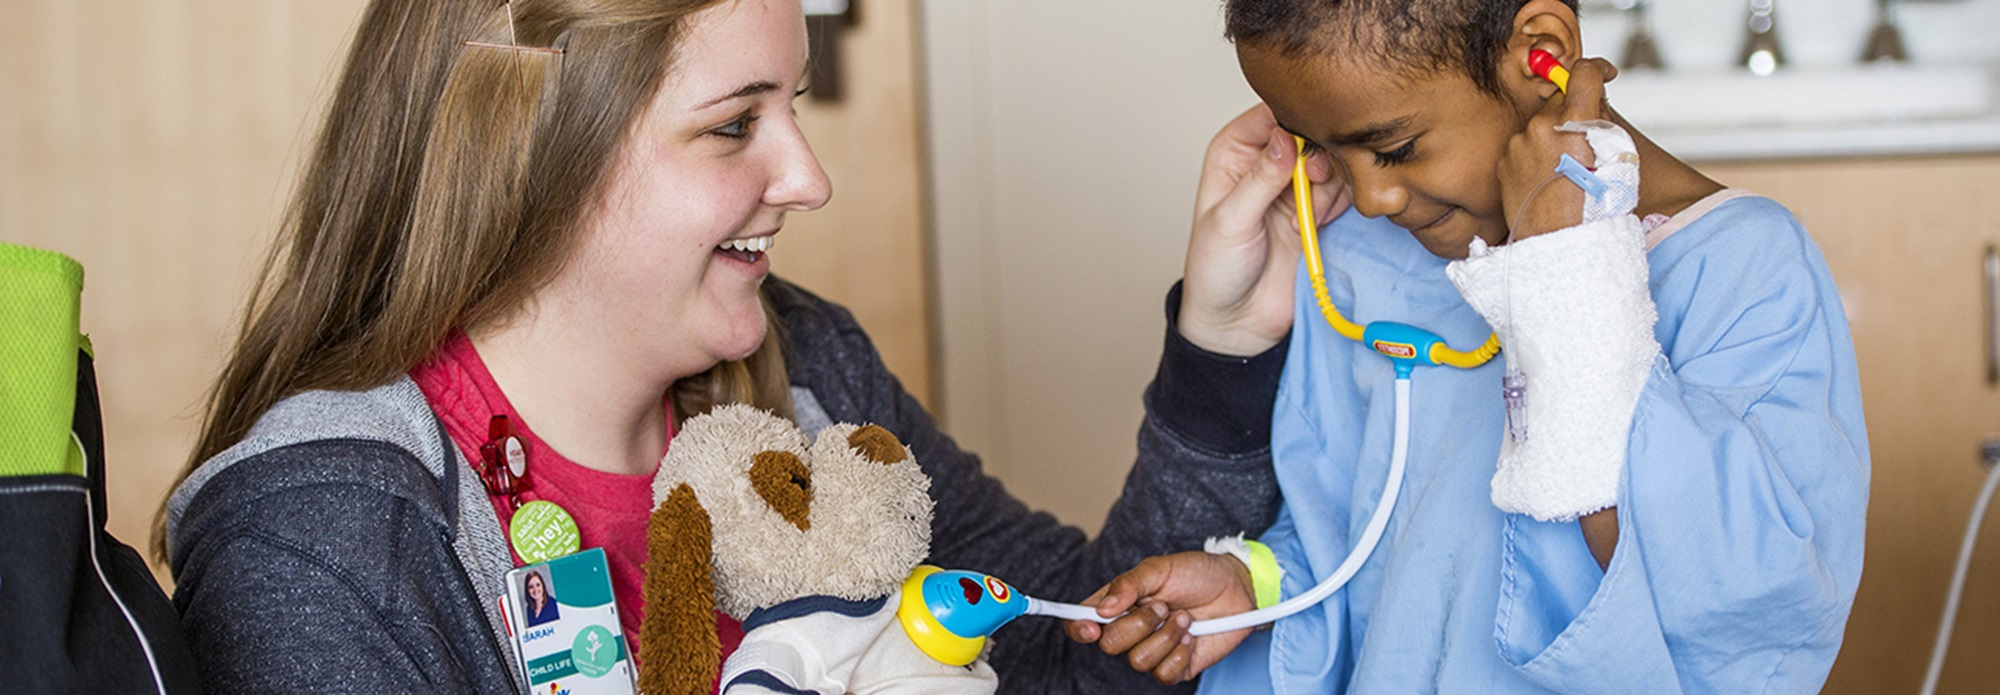 A child life specialists helps a kid listen to a stuffed animal's heartbeat with a toy stethoscope.